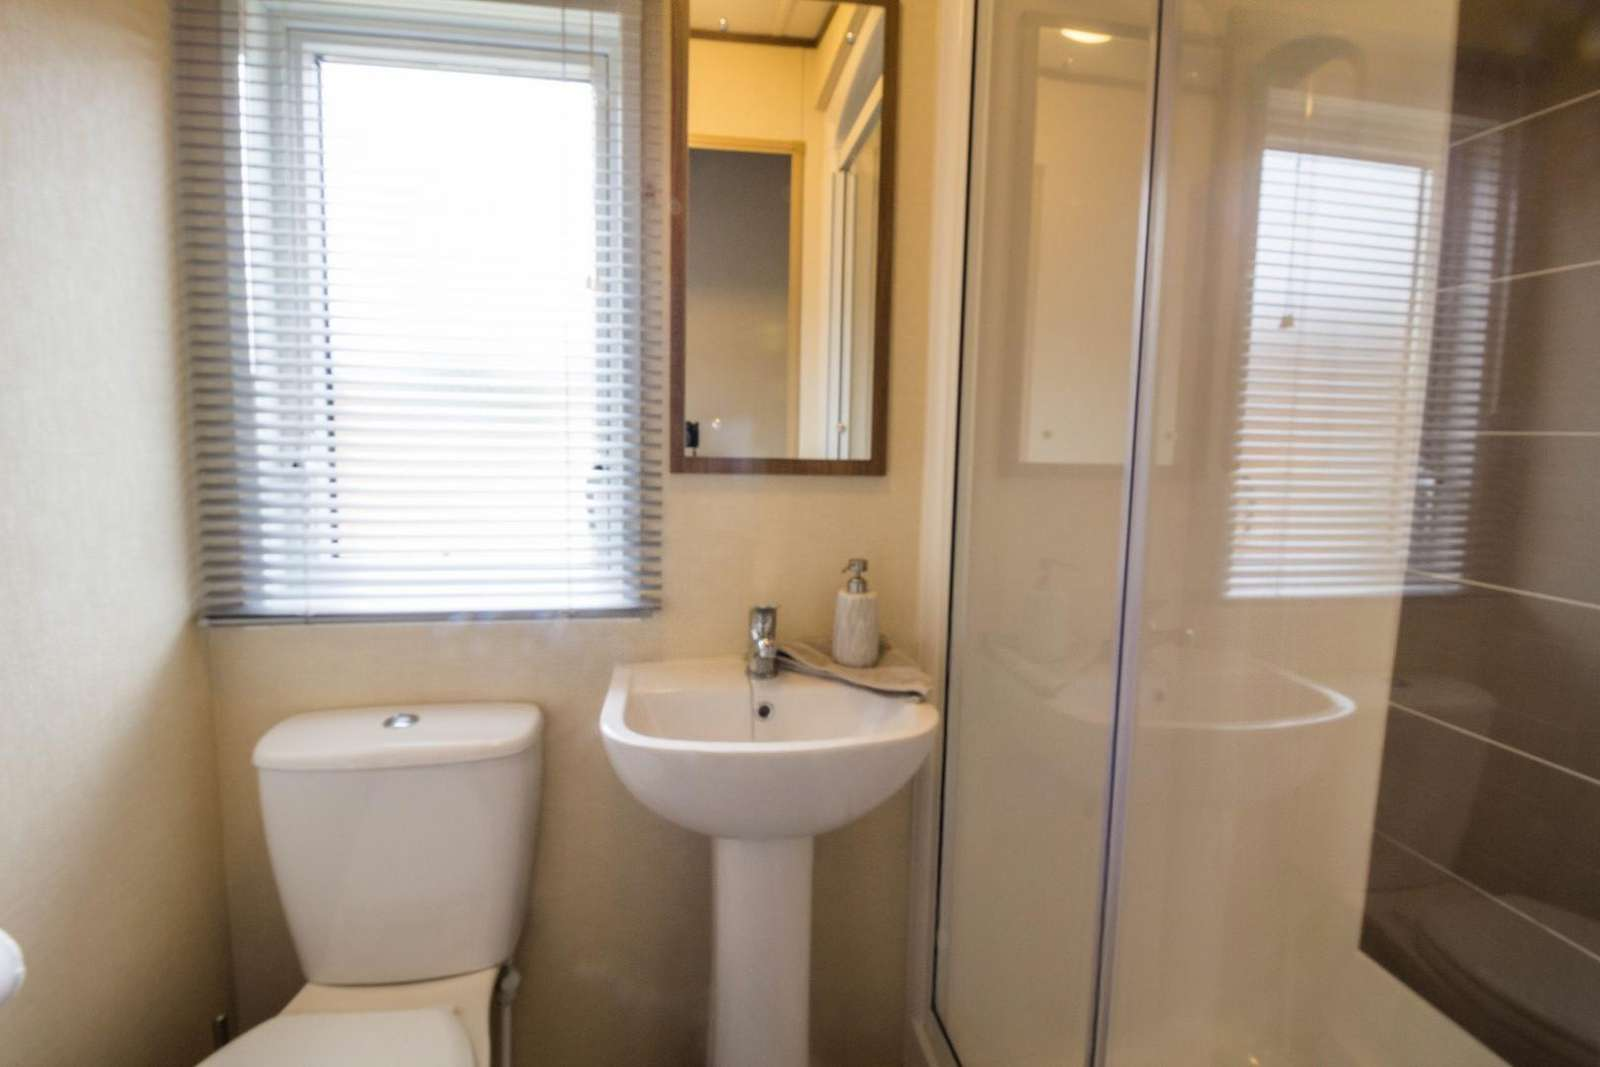 We ensure that all our holiday homes are cleaned to a hight standard